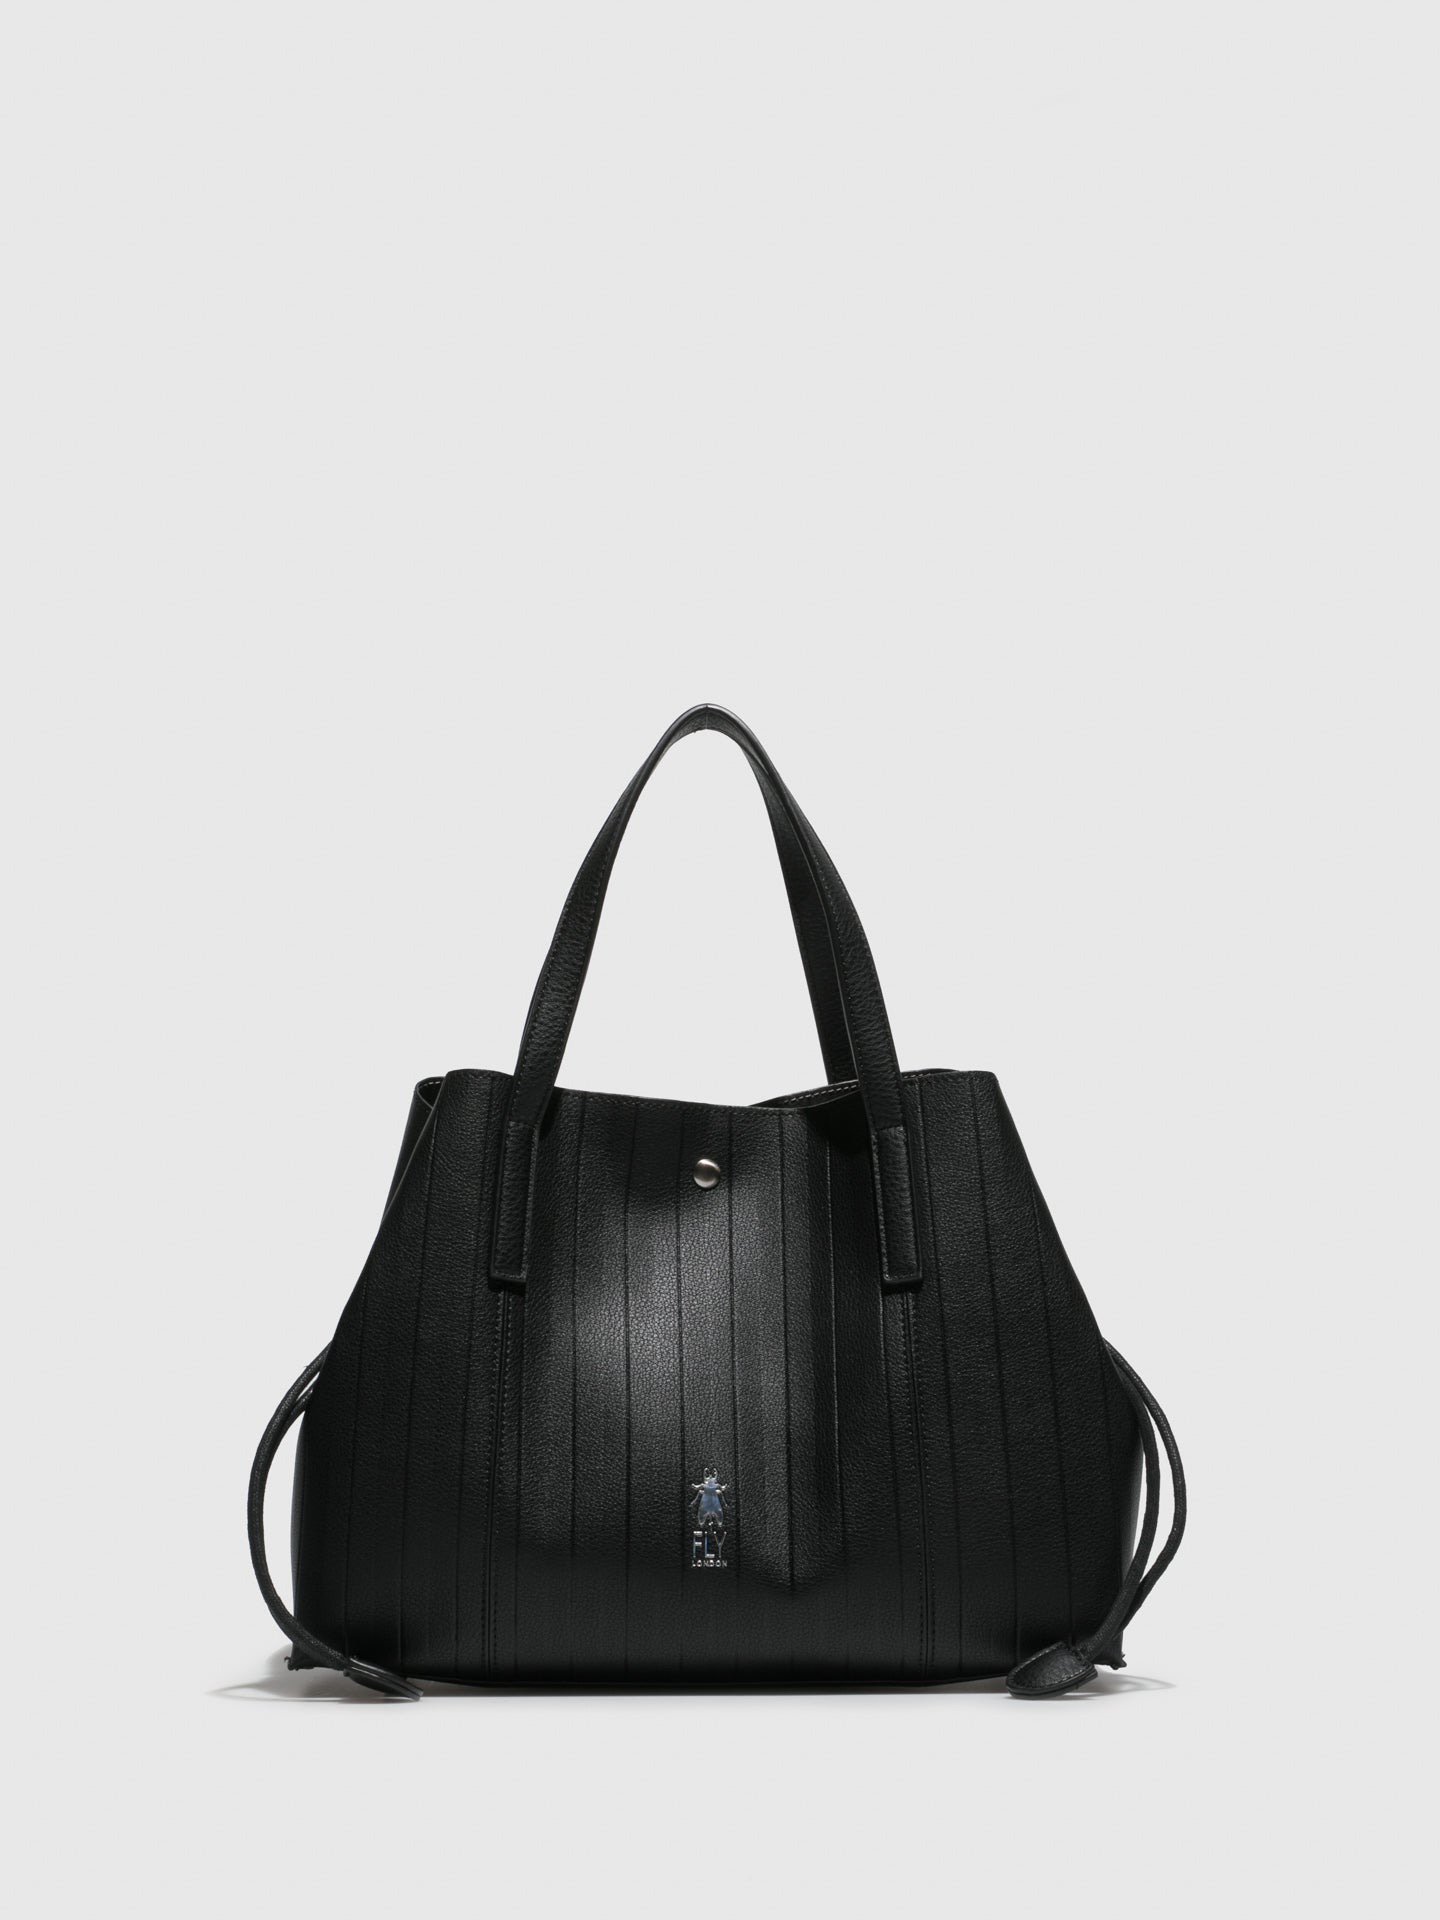 Fly London Handbag Bags AROW699FLY ELIOT BLACK